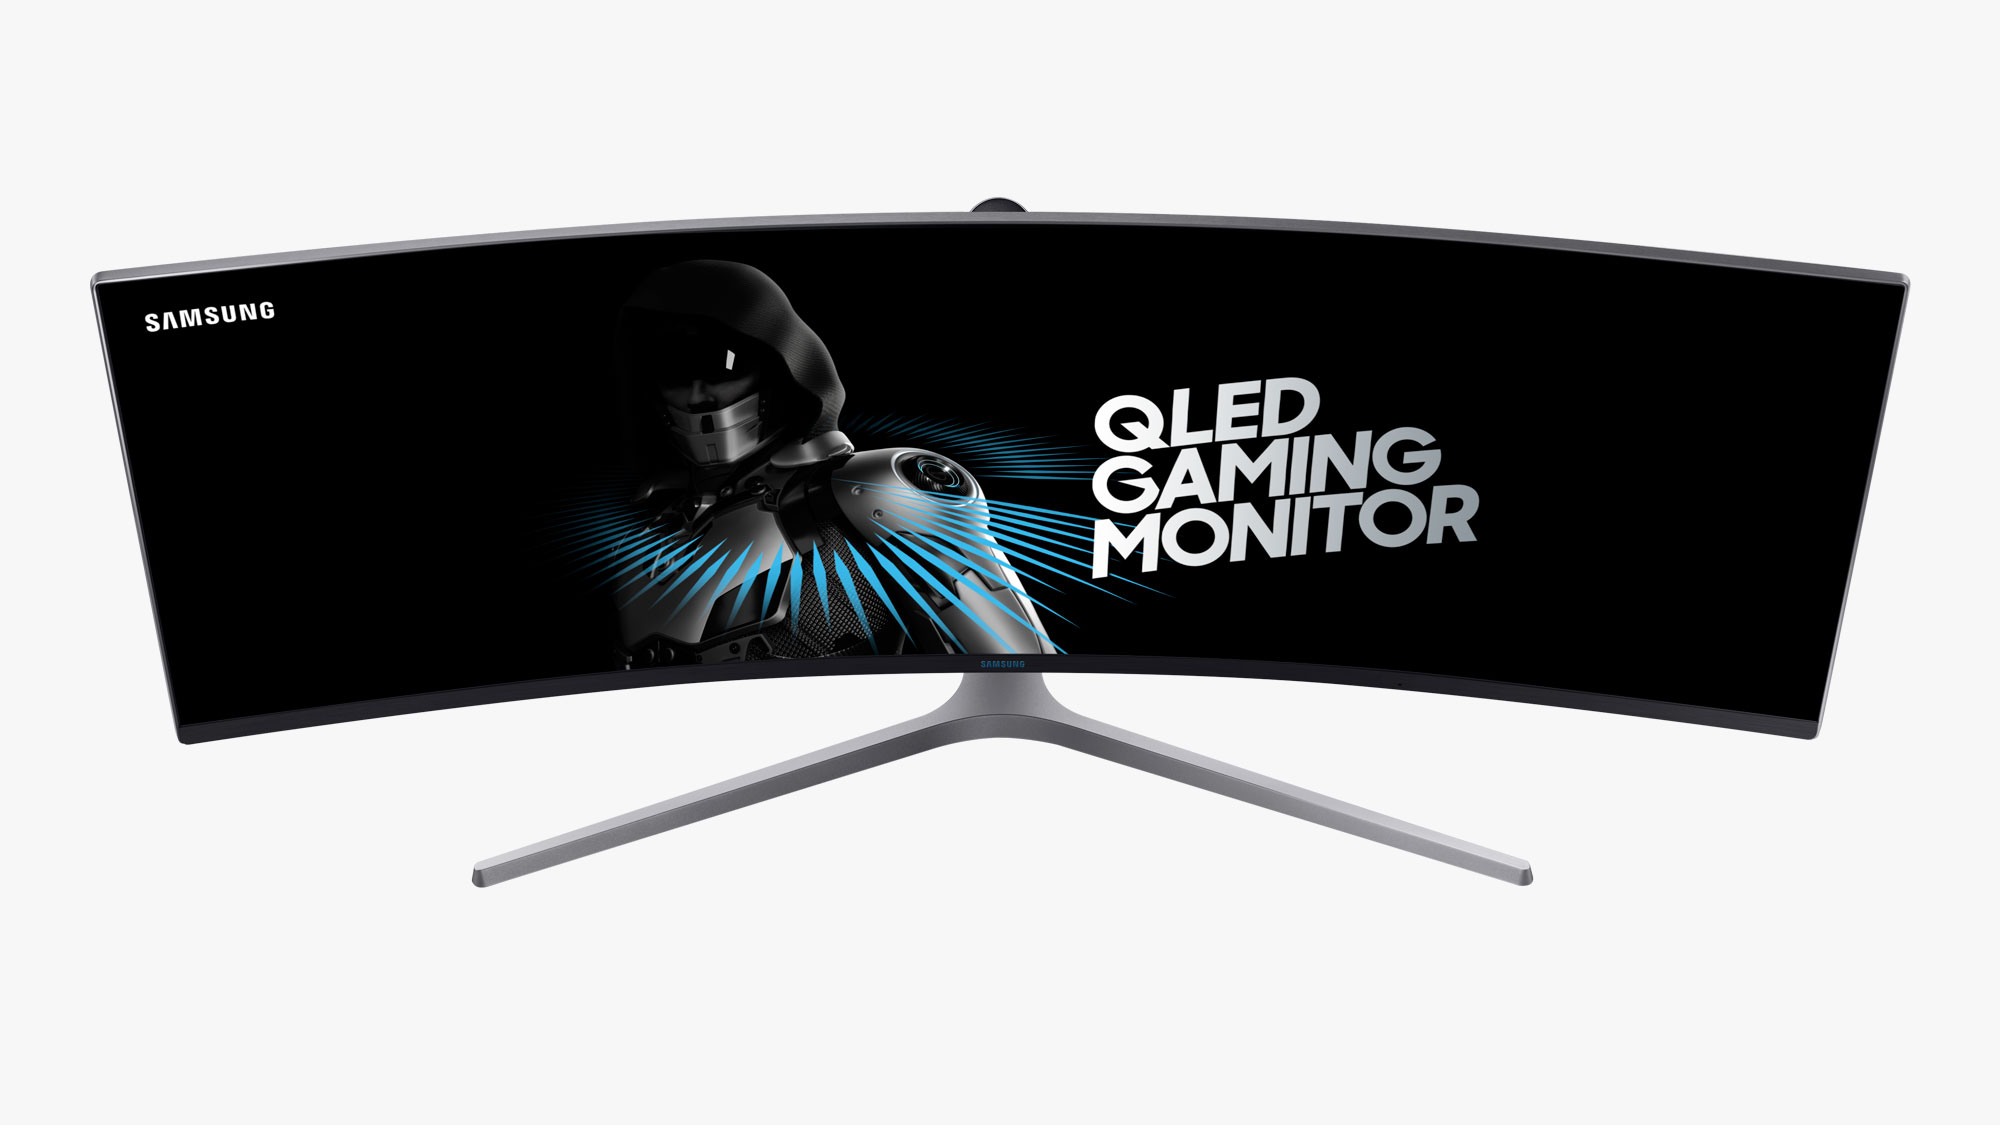 49-inch, curved Samsung QLED Gaming Monitor on white